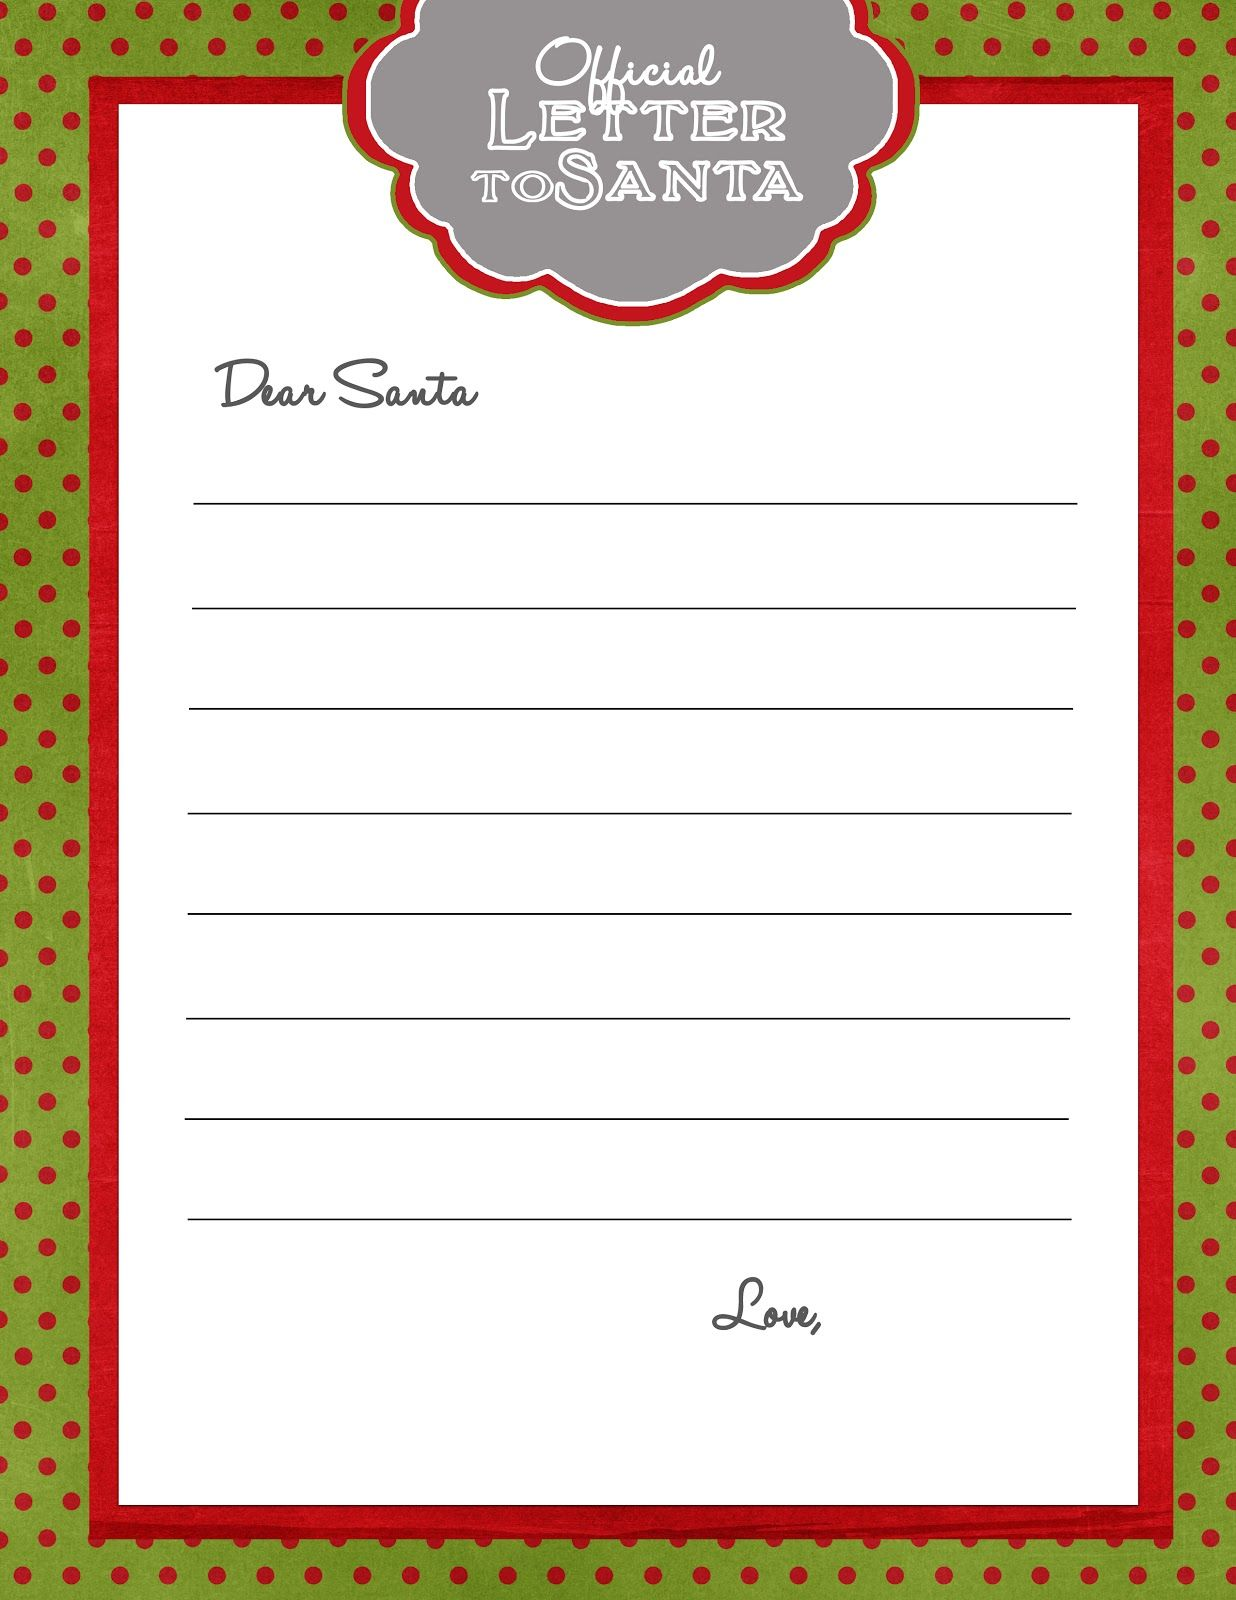 281 Fourth Street Free Printable Letter To Santa